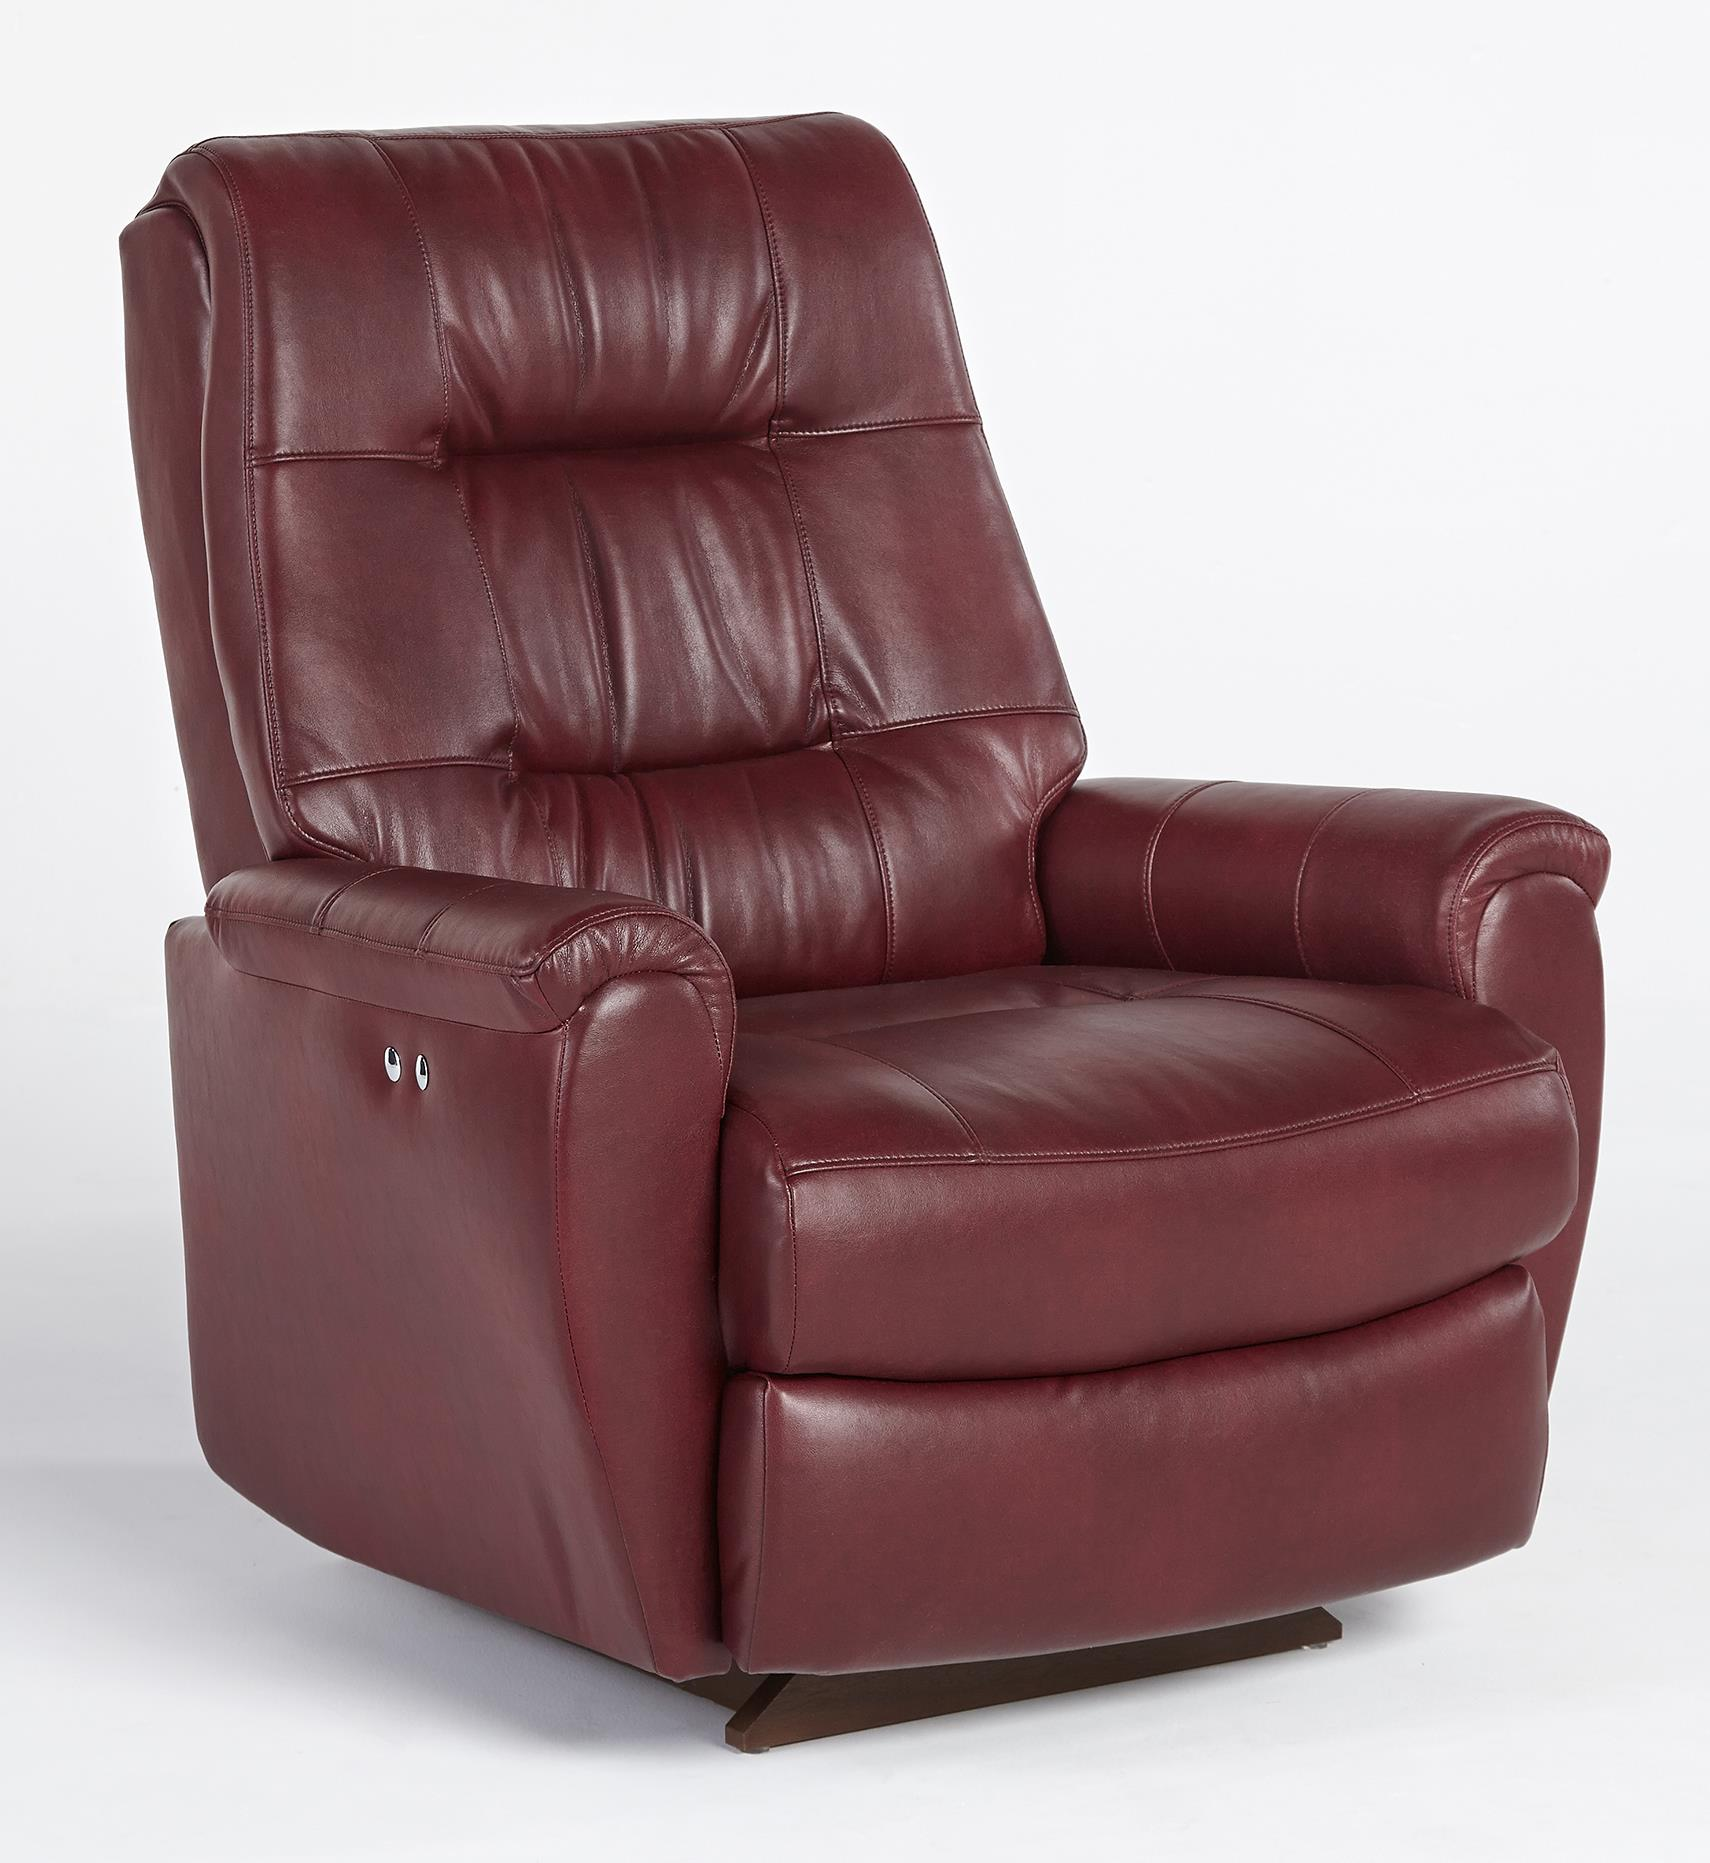 Felicia Swivel Rocker Recliner with ButtonTufted Back by